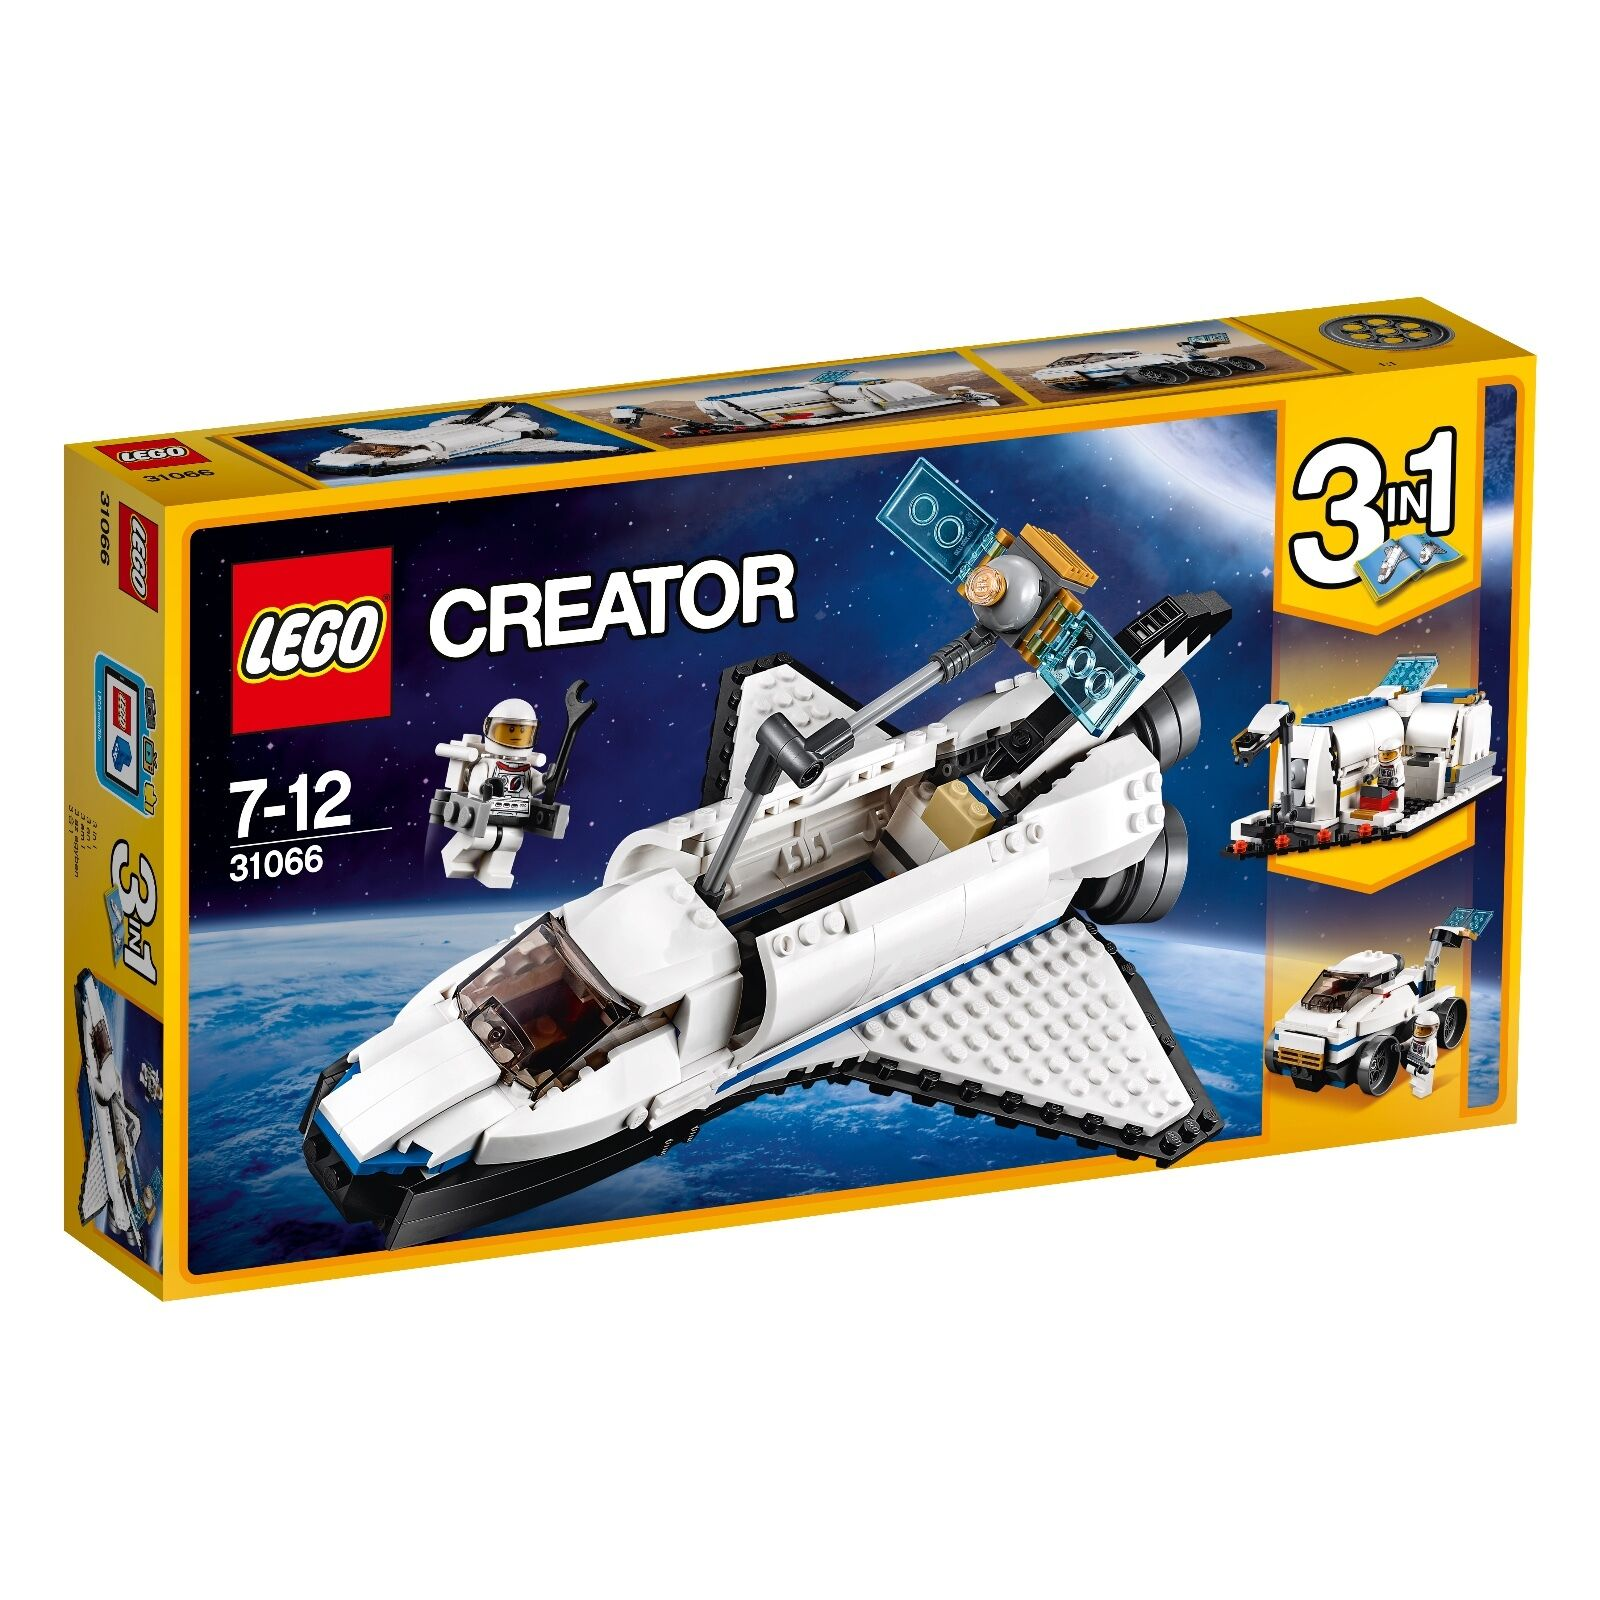 LEGO ® Creator 31066 ricerca spaceshuttle NUOVO OVP _ NEW MISB NRFB